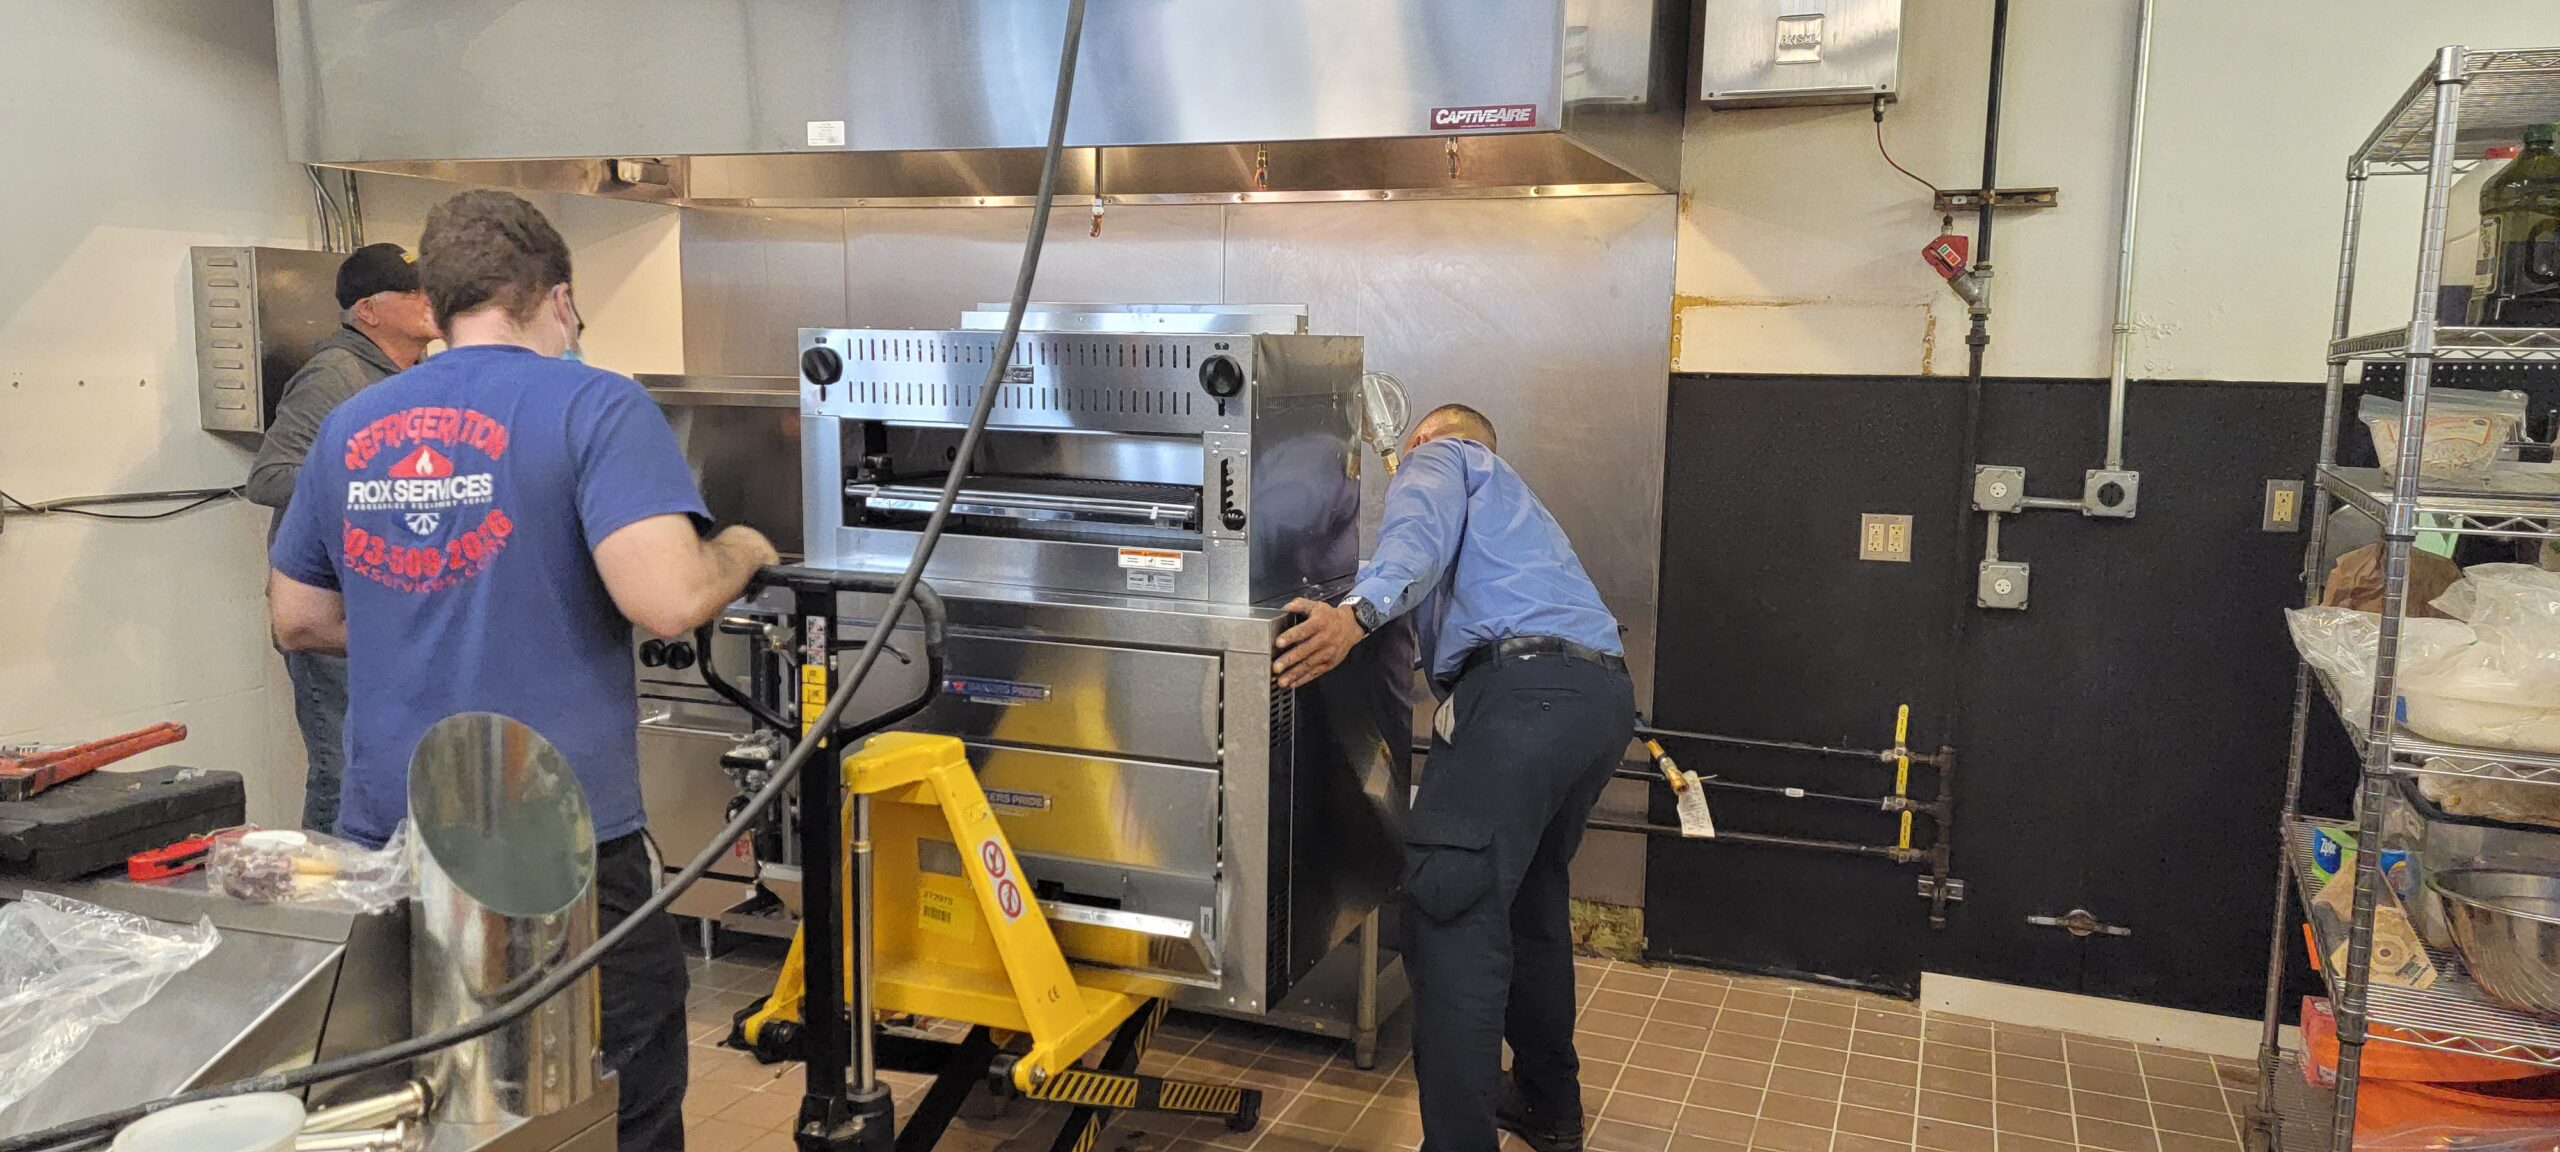 Five Reasons When To Have Professional Commercial Kitchen Appliance Repair In Portland Oregon